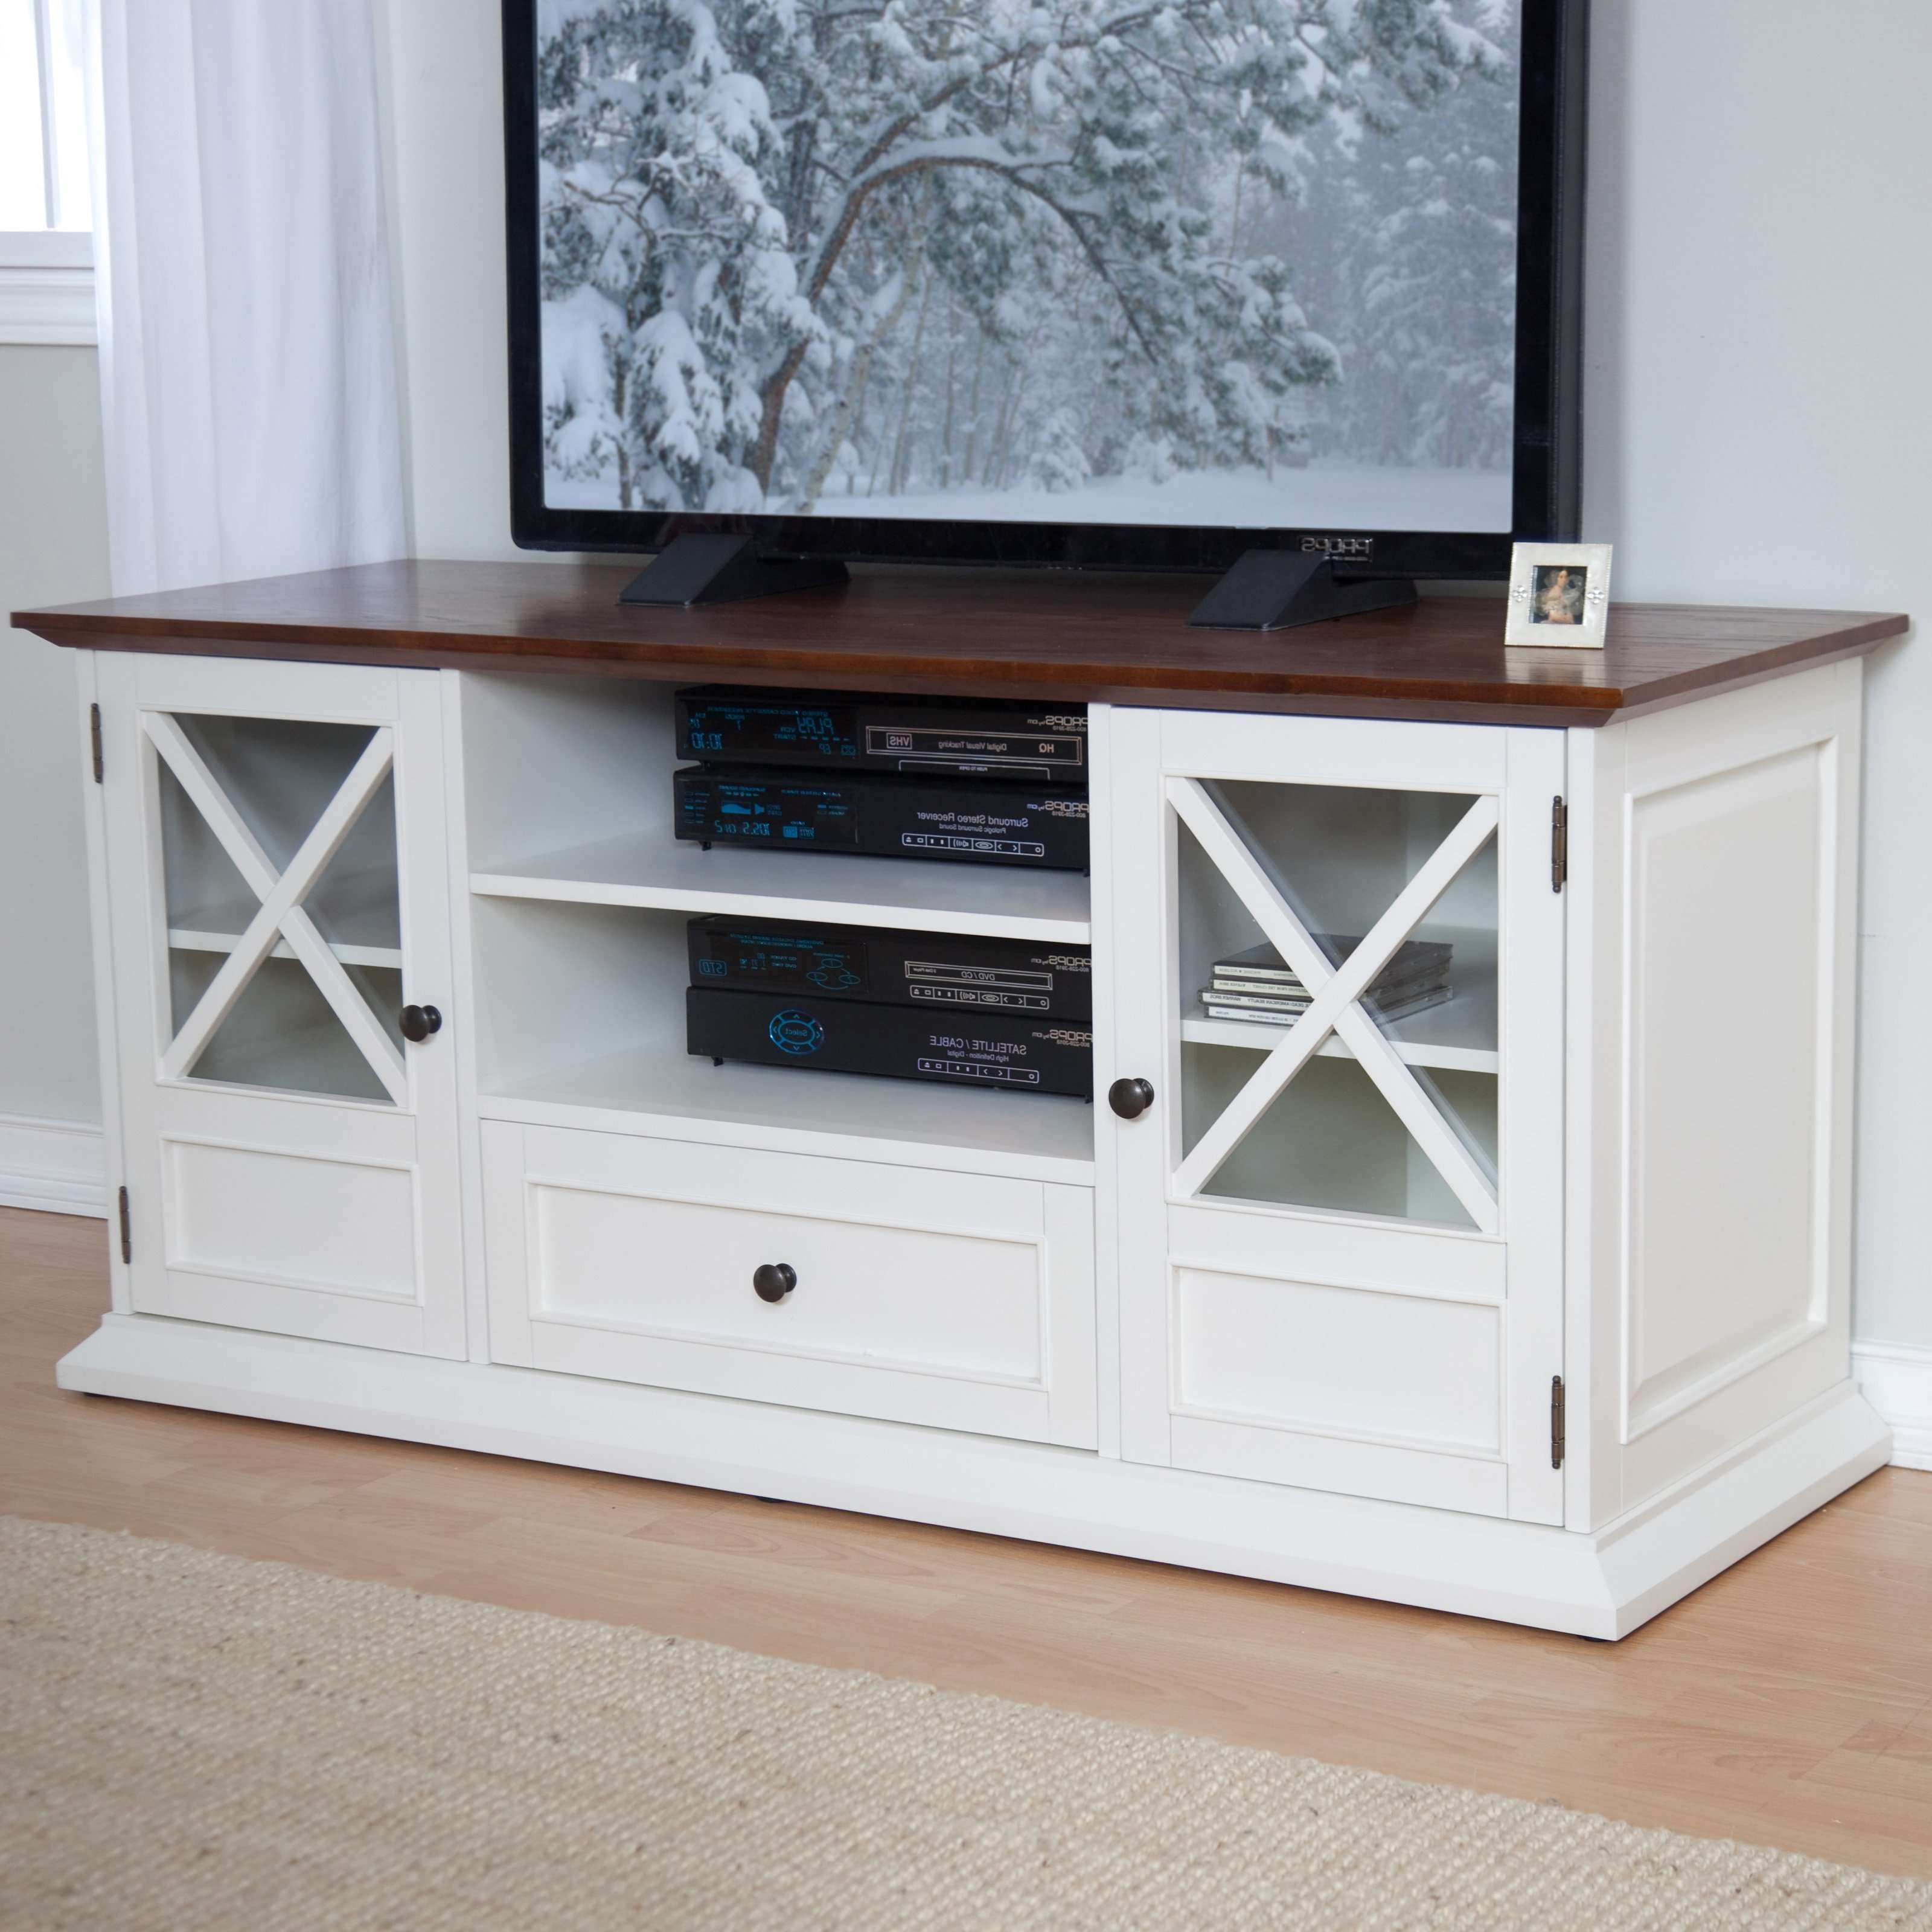 Tv Stands & Entertainment Centers | Hayneedle Within 24 Inch Tall Tv Stands (View 6 of 15)